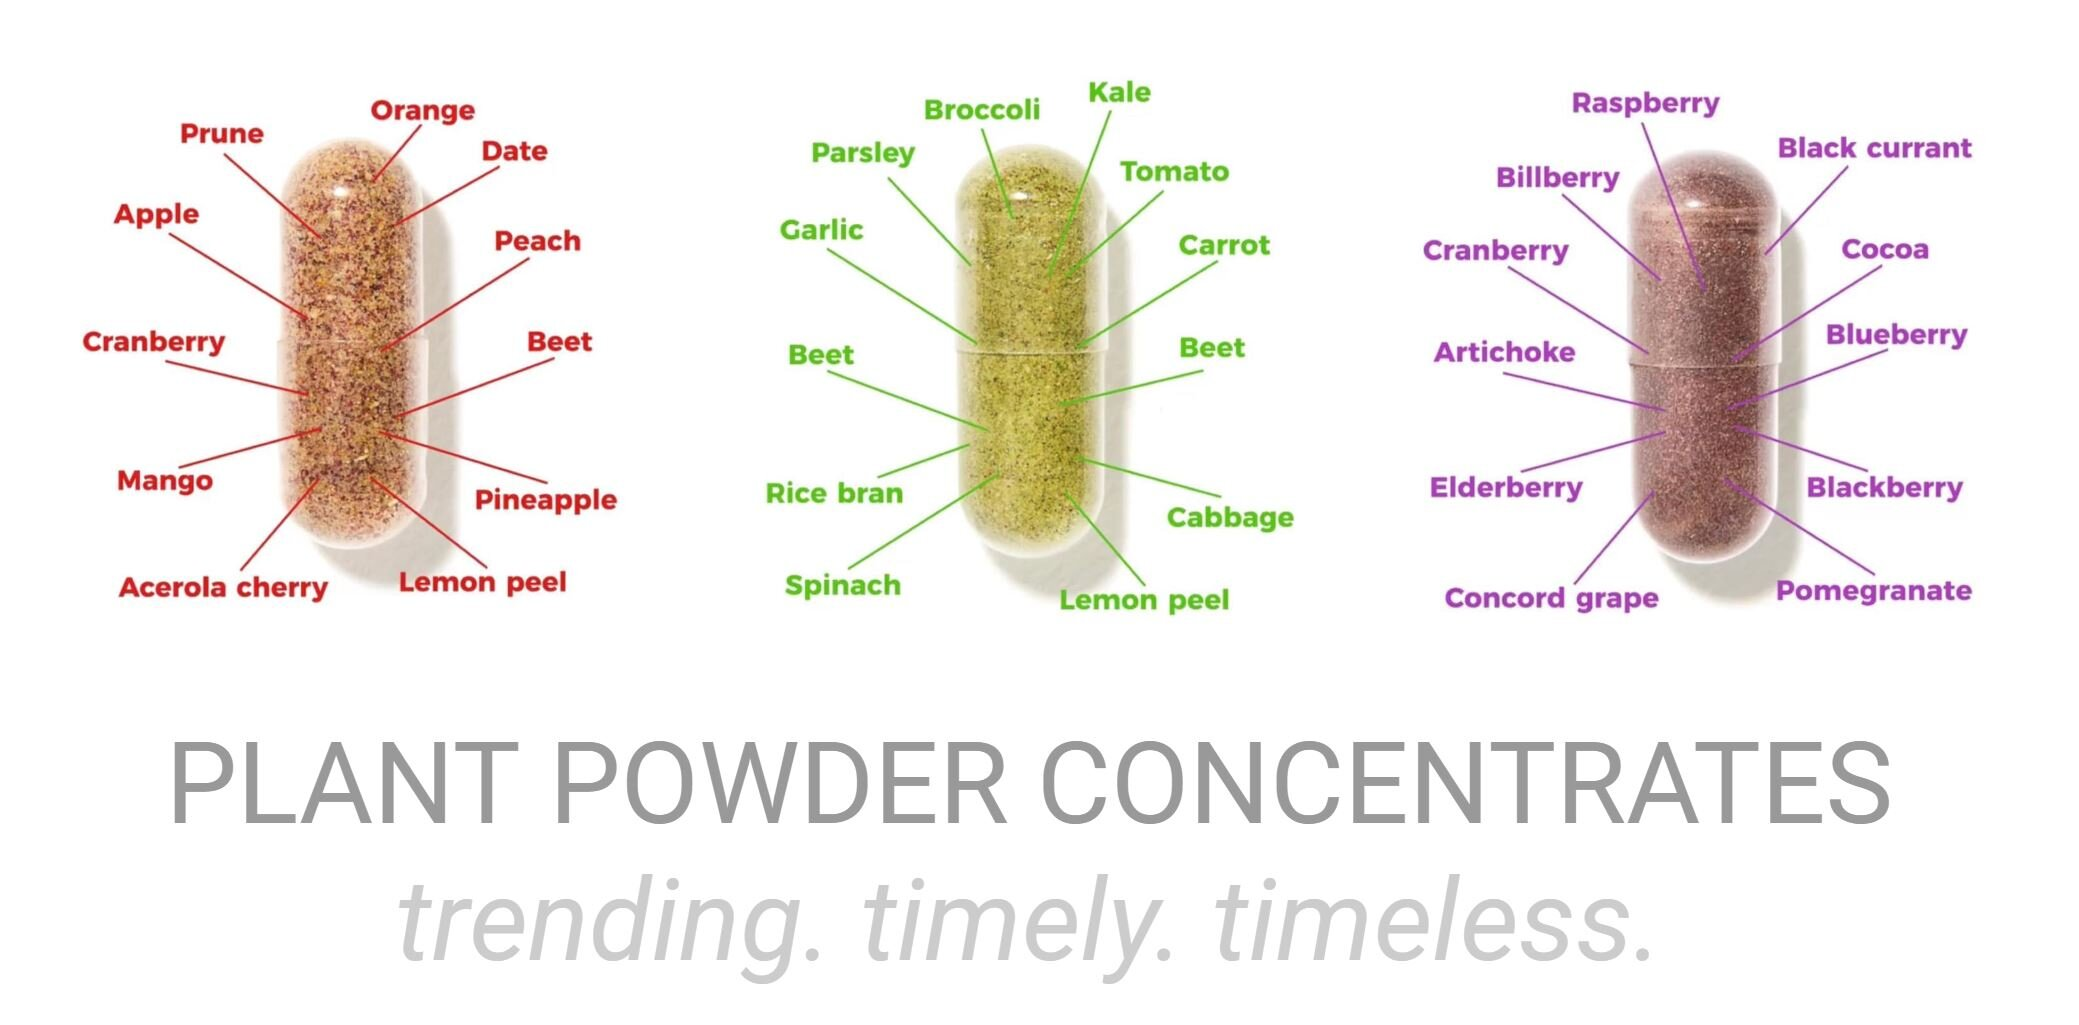 PLANT POWDER CONCENTRATES.JPG